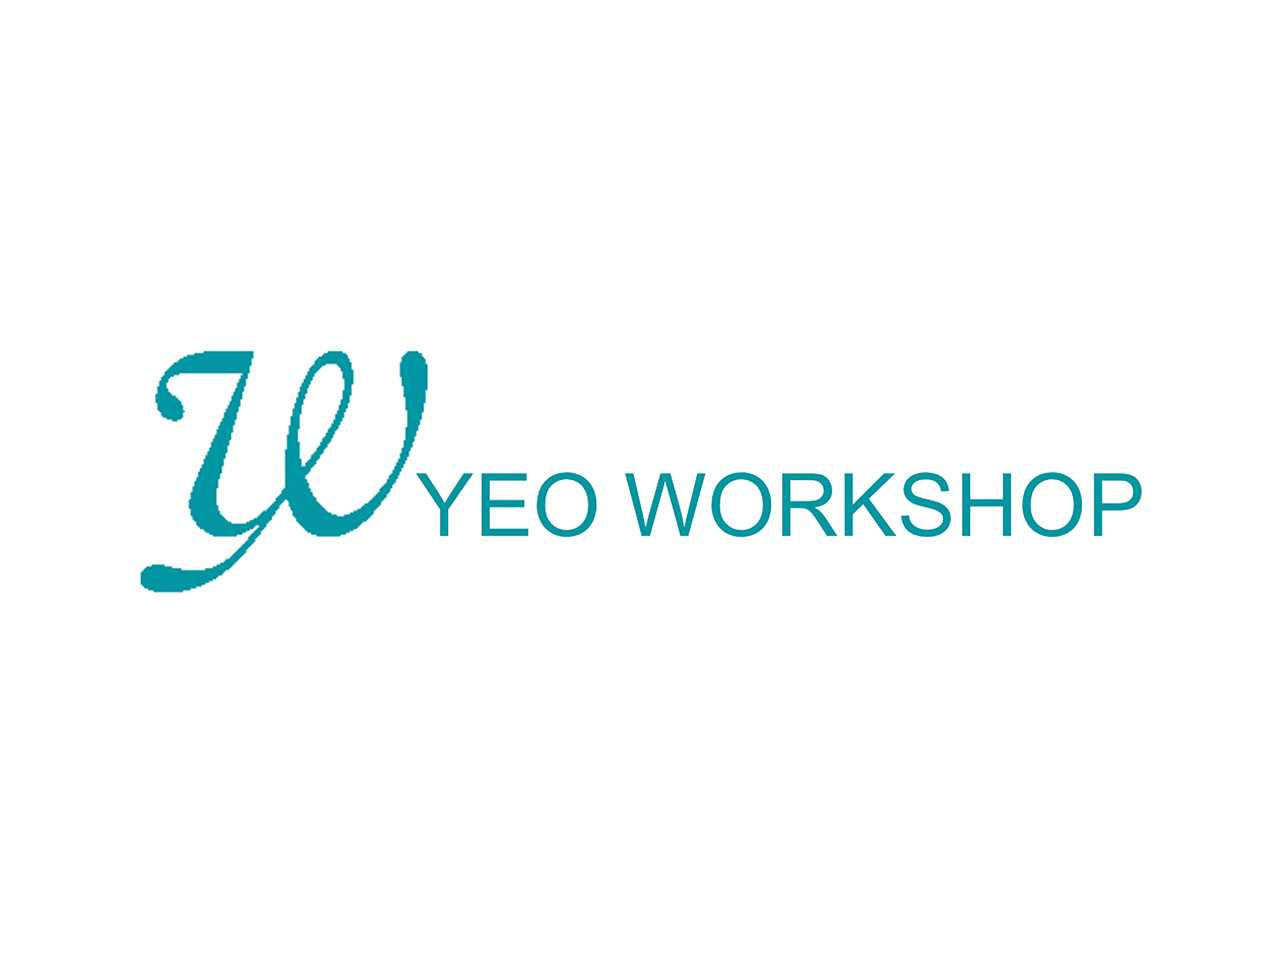 Yeo Workshop